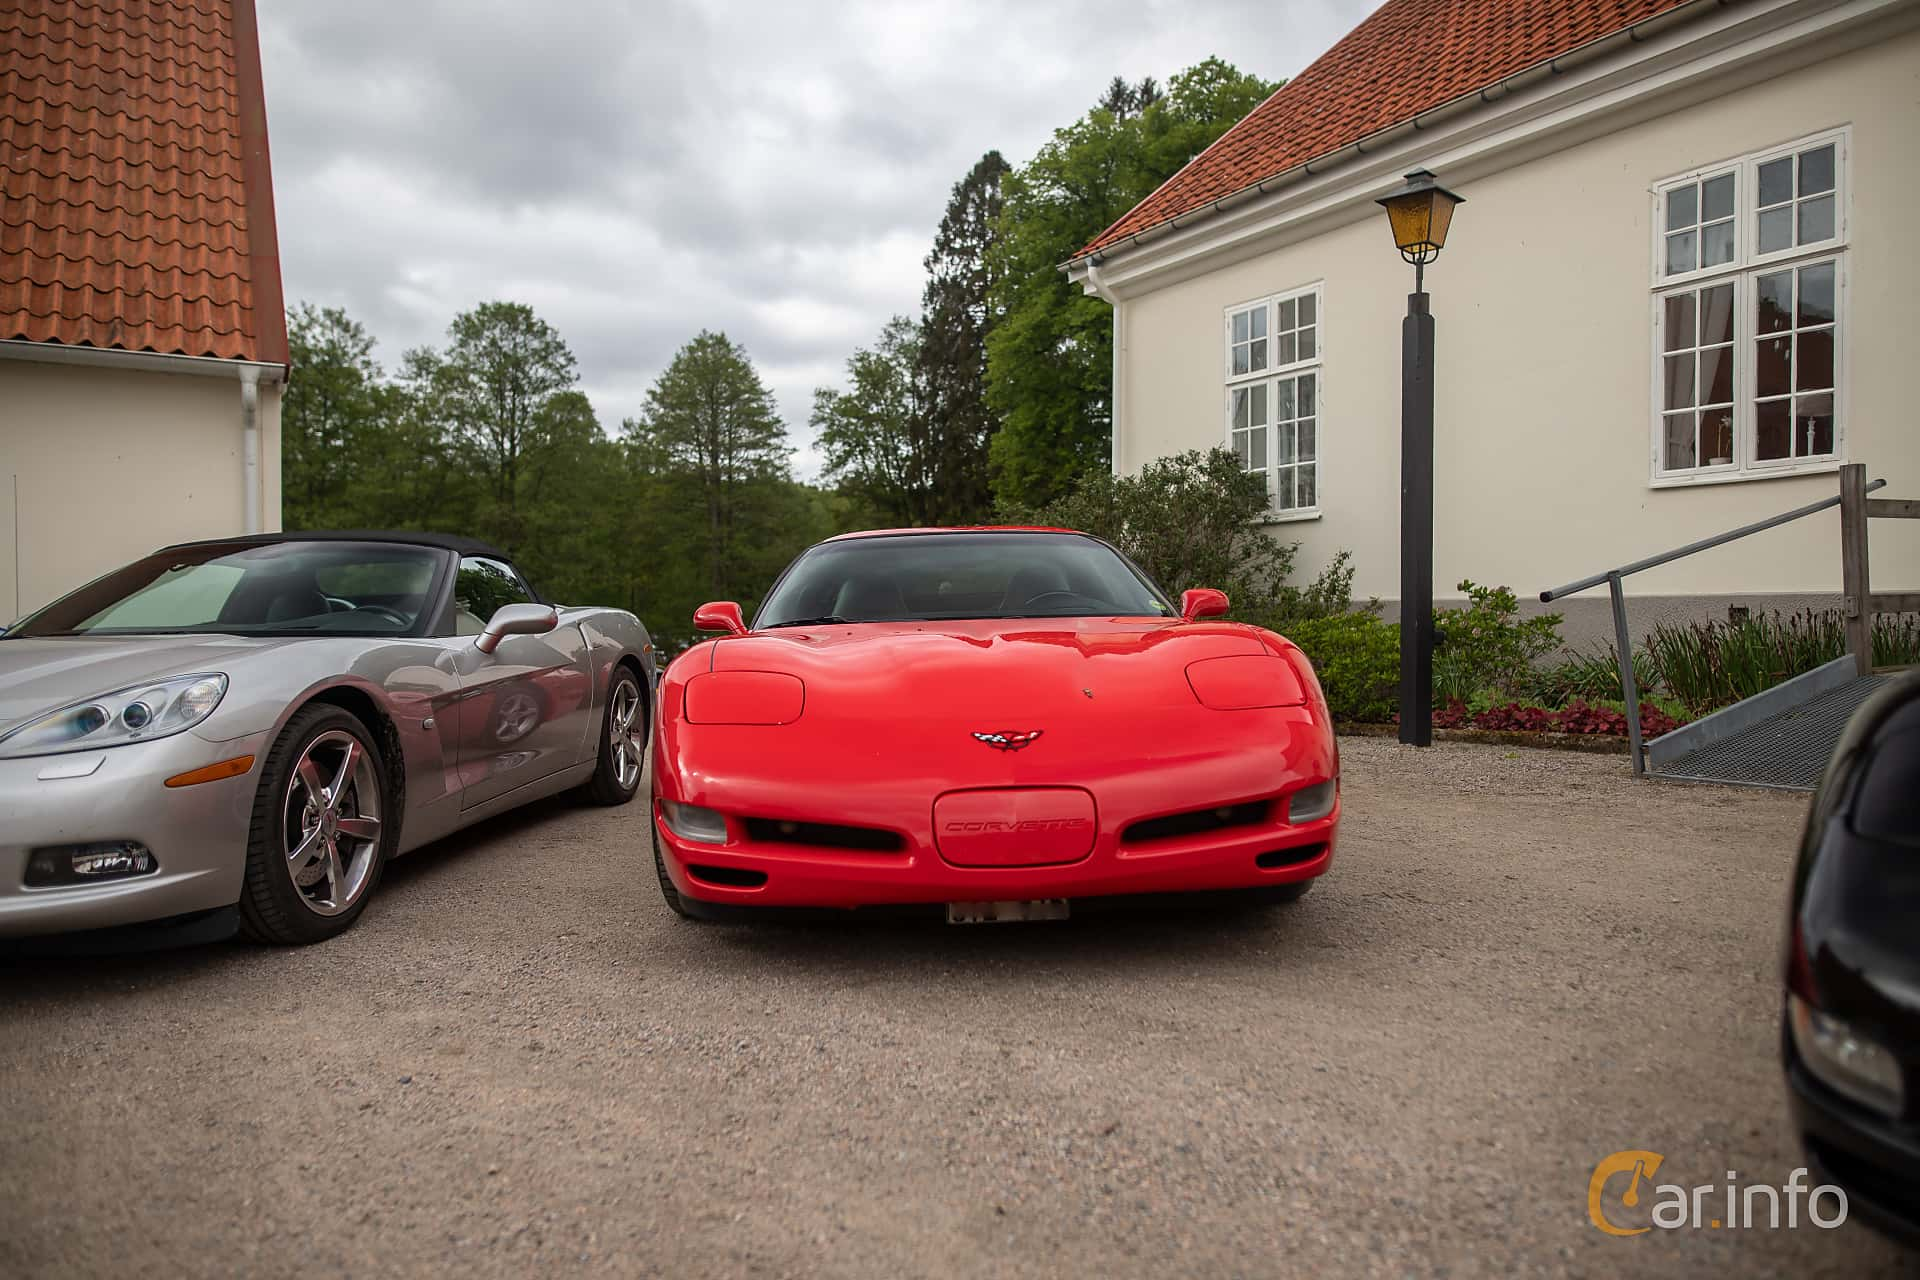 5 Images Of Chevrolet Corvette 5 7 V8 Hydra Matic 350hp 2000 By Mbe